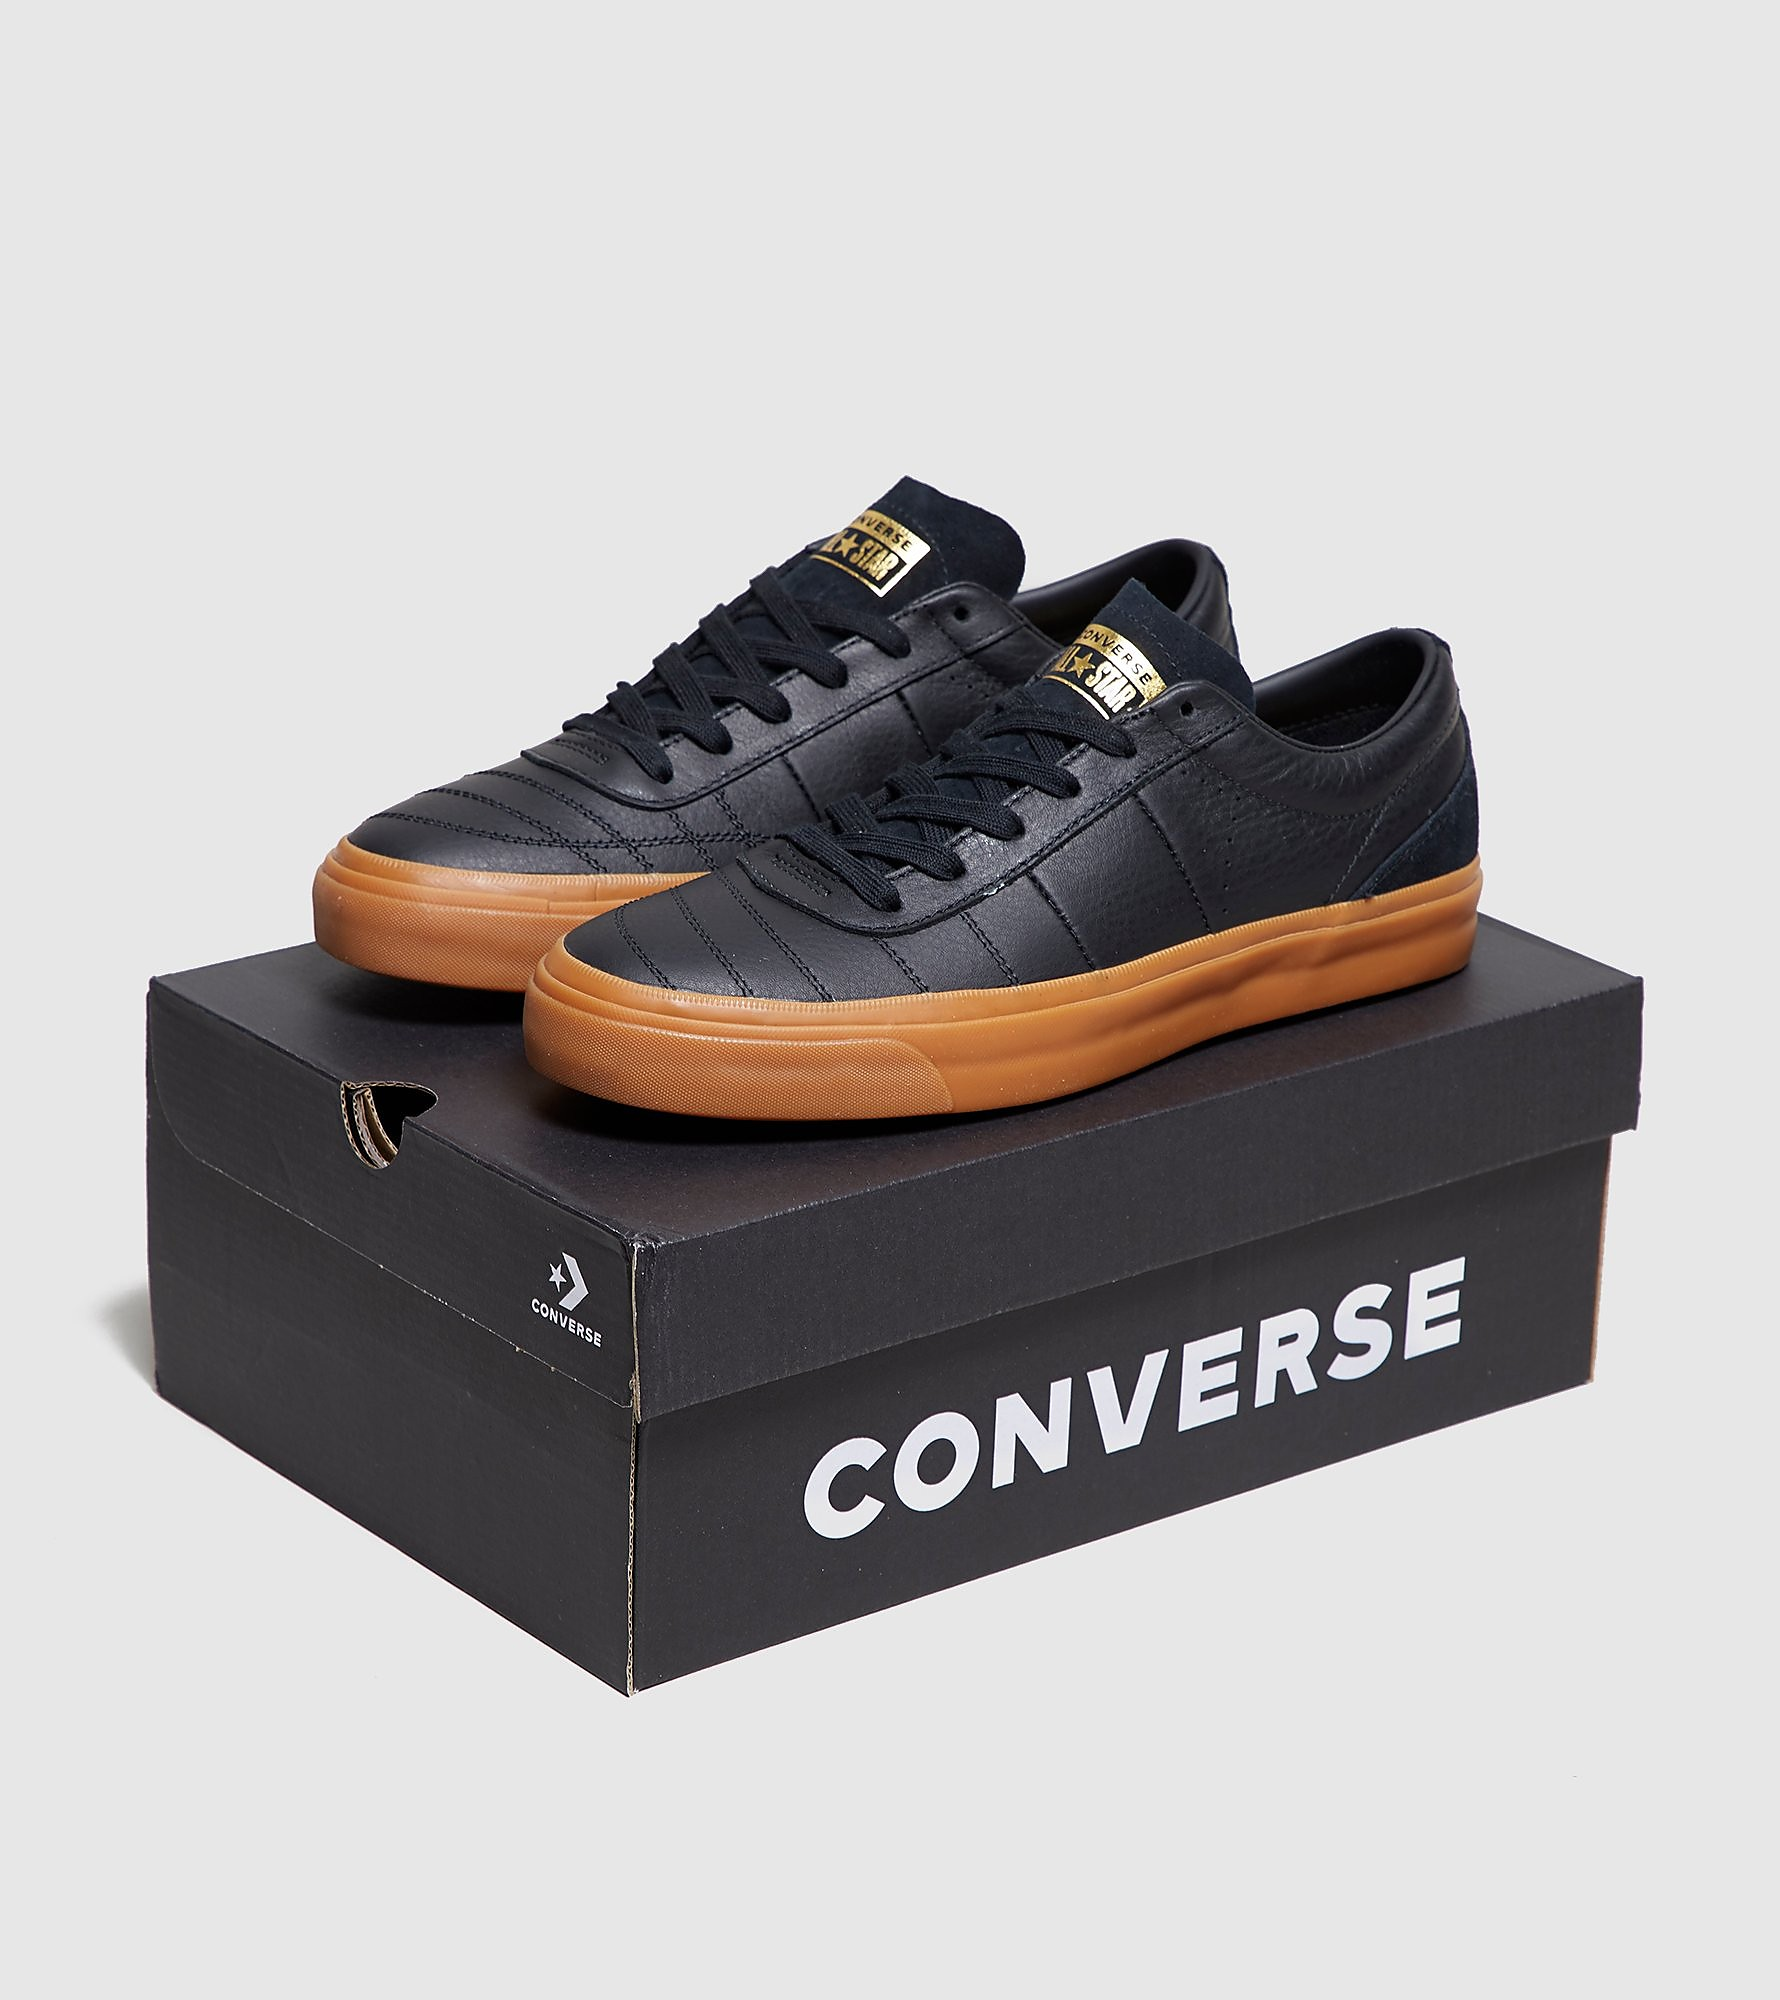 Converse One Star CC